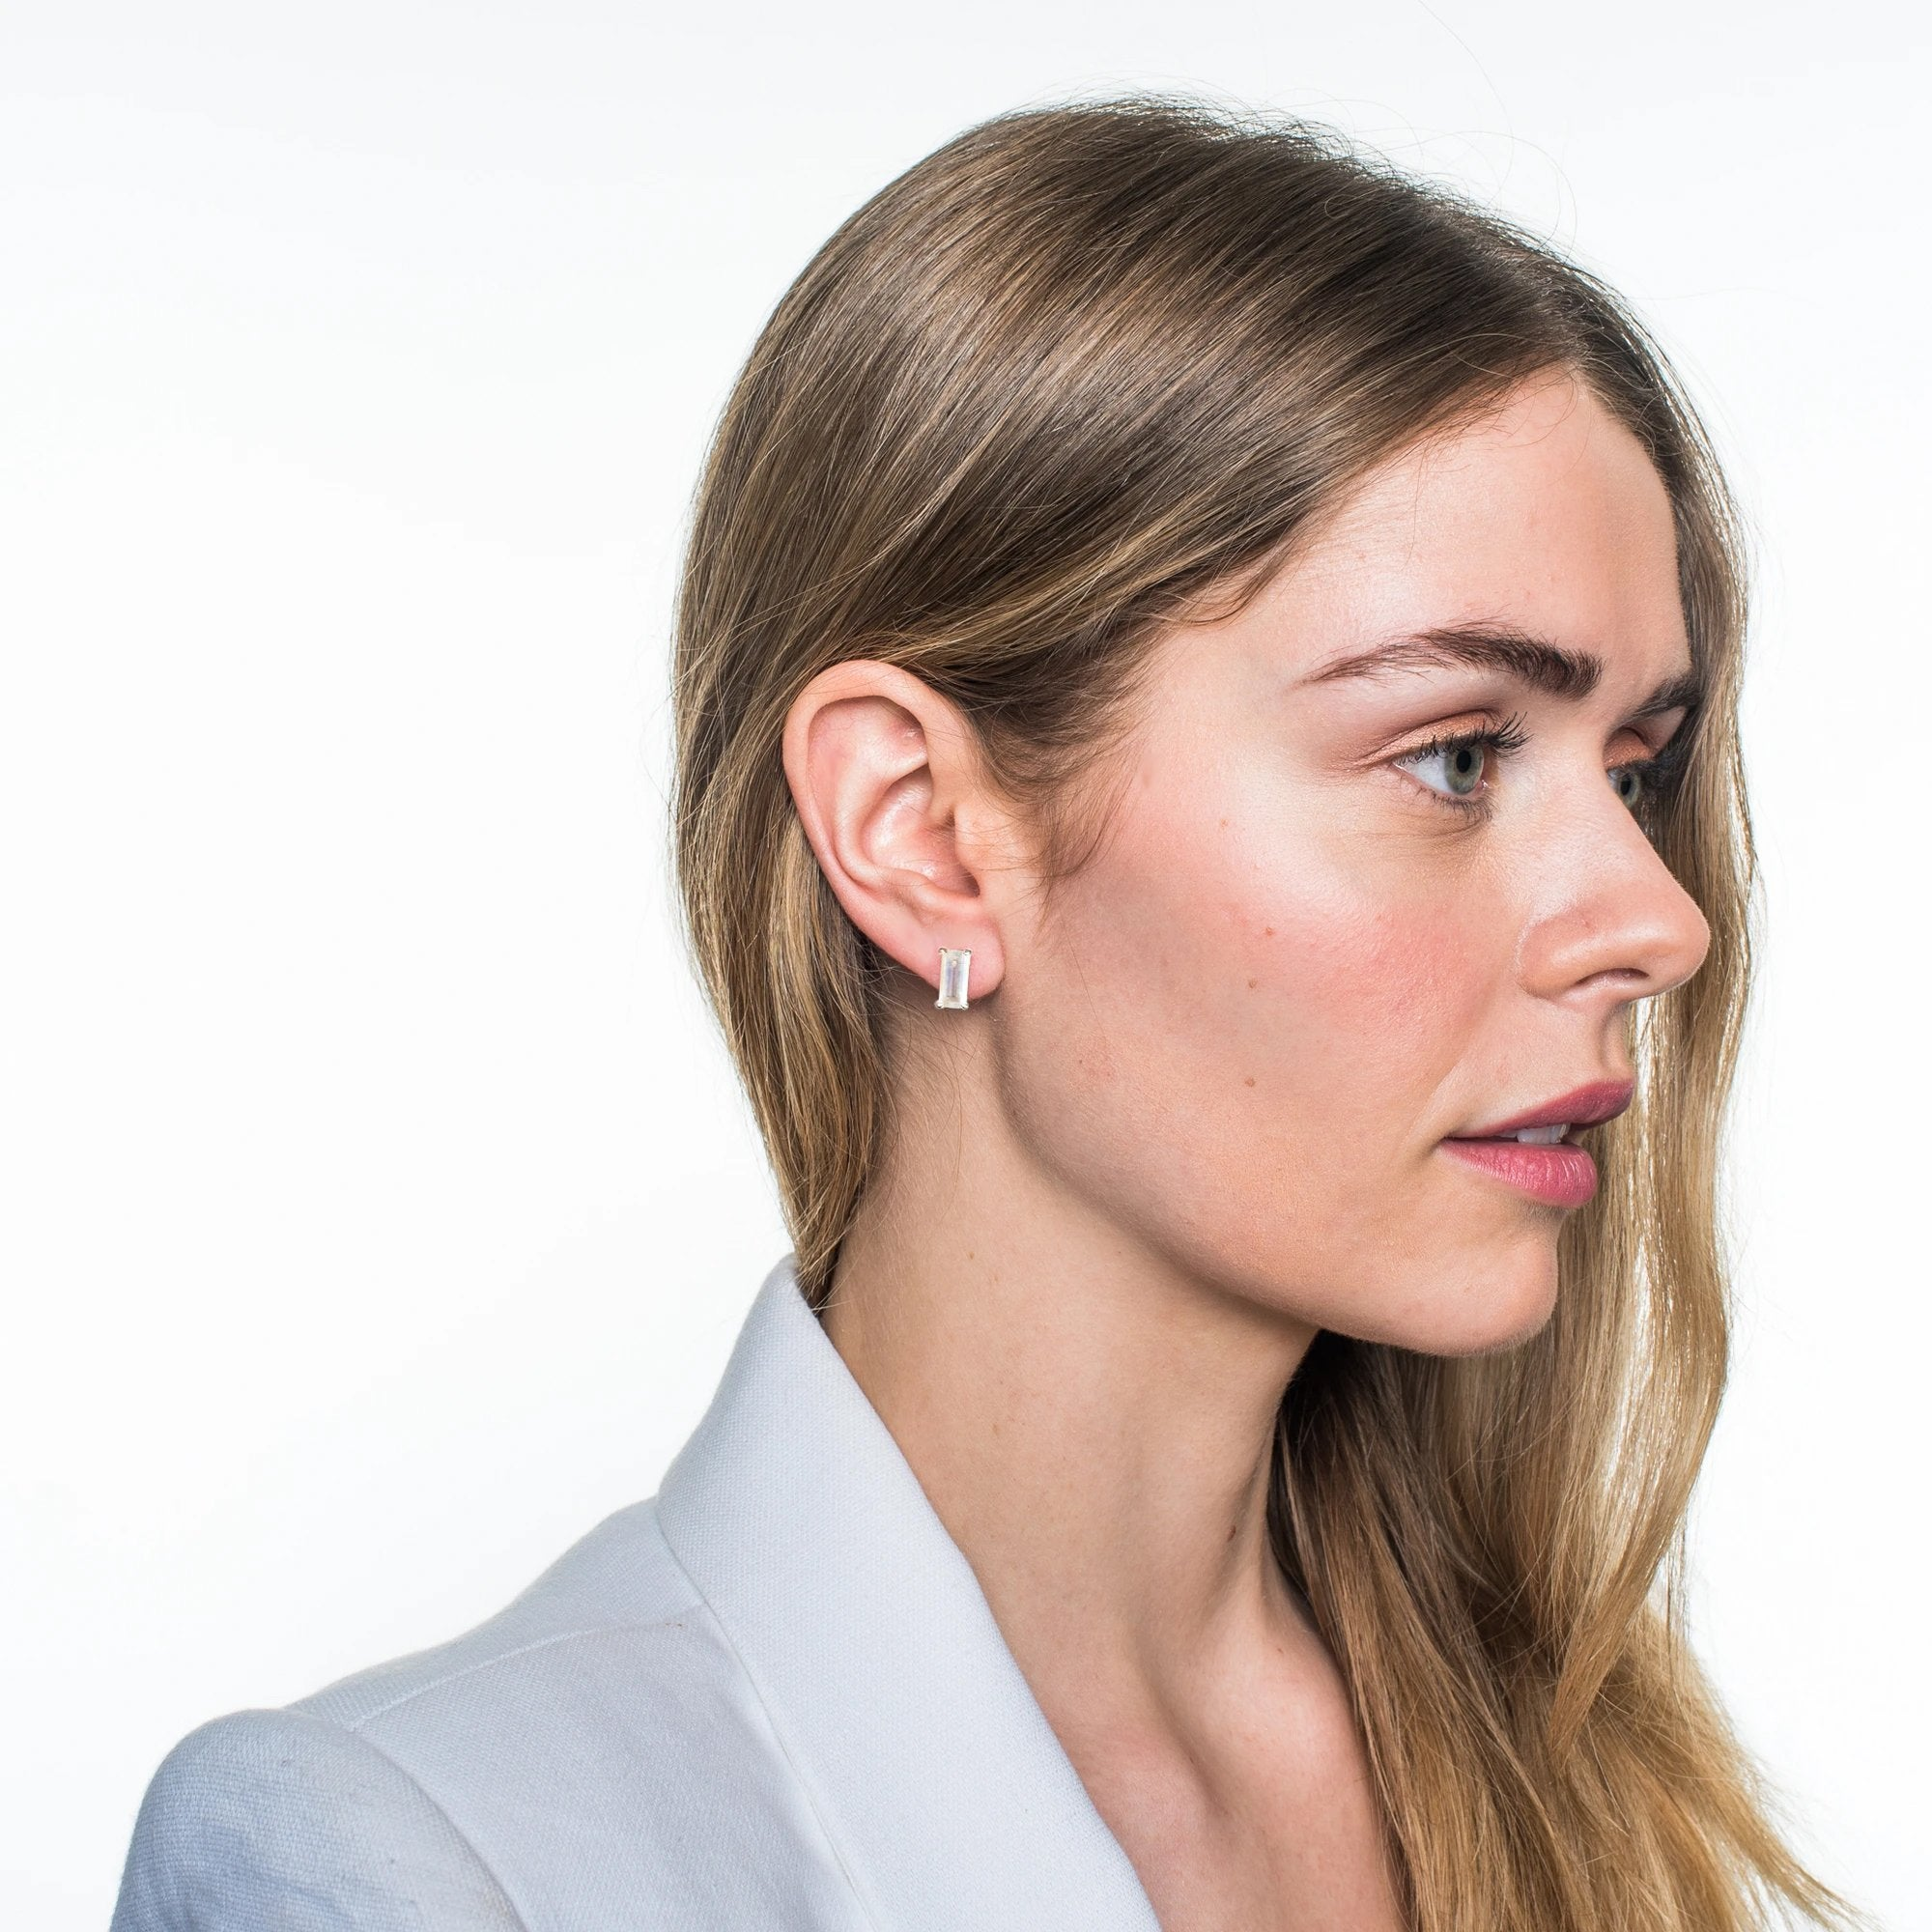 LOYAL STUD EARRINGS - RAINBOW MOONSTONE & SILVER - SO PRETTY CARA COTTER